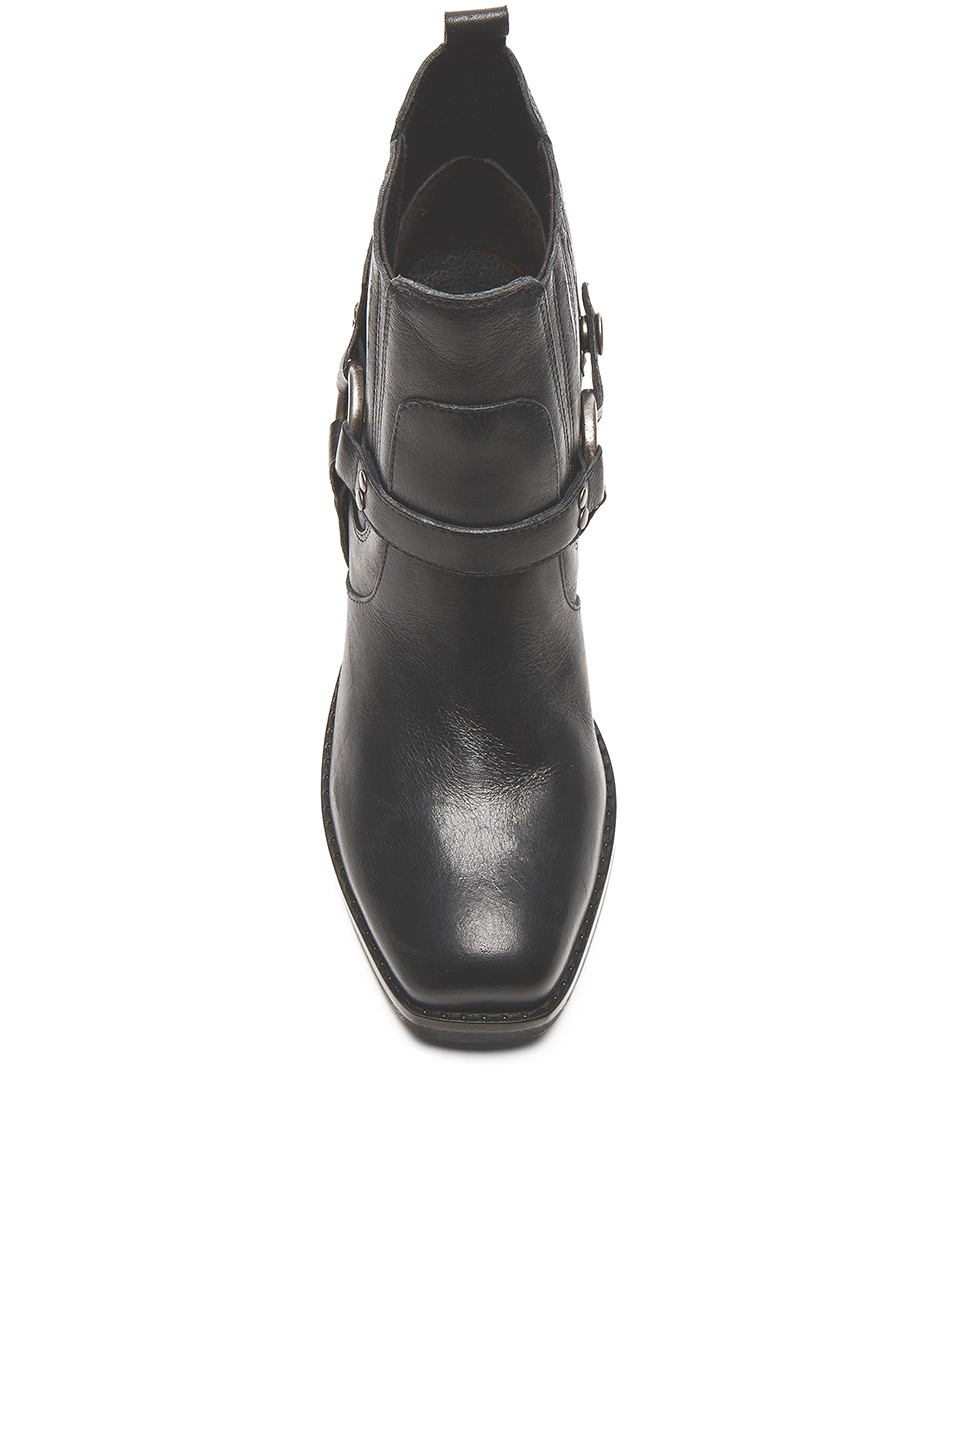 Matisse Leather Jasmin Boot in Black